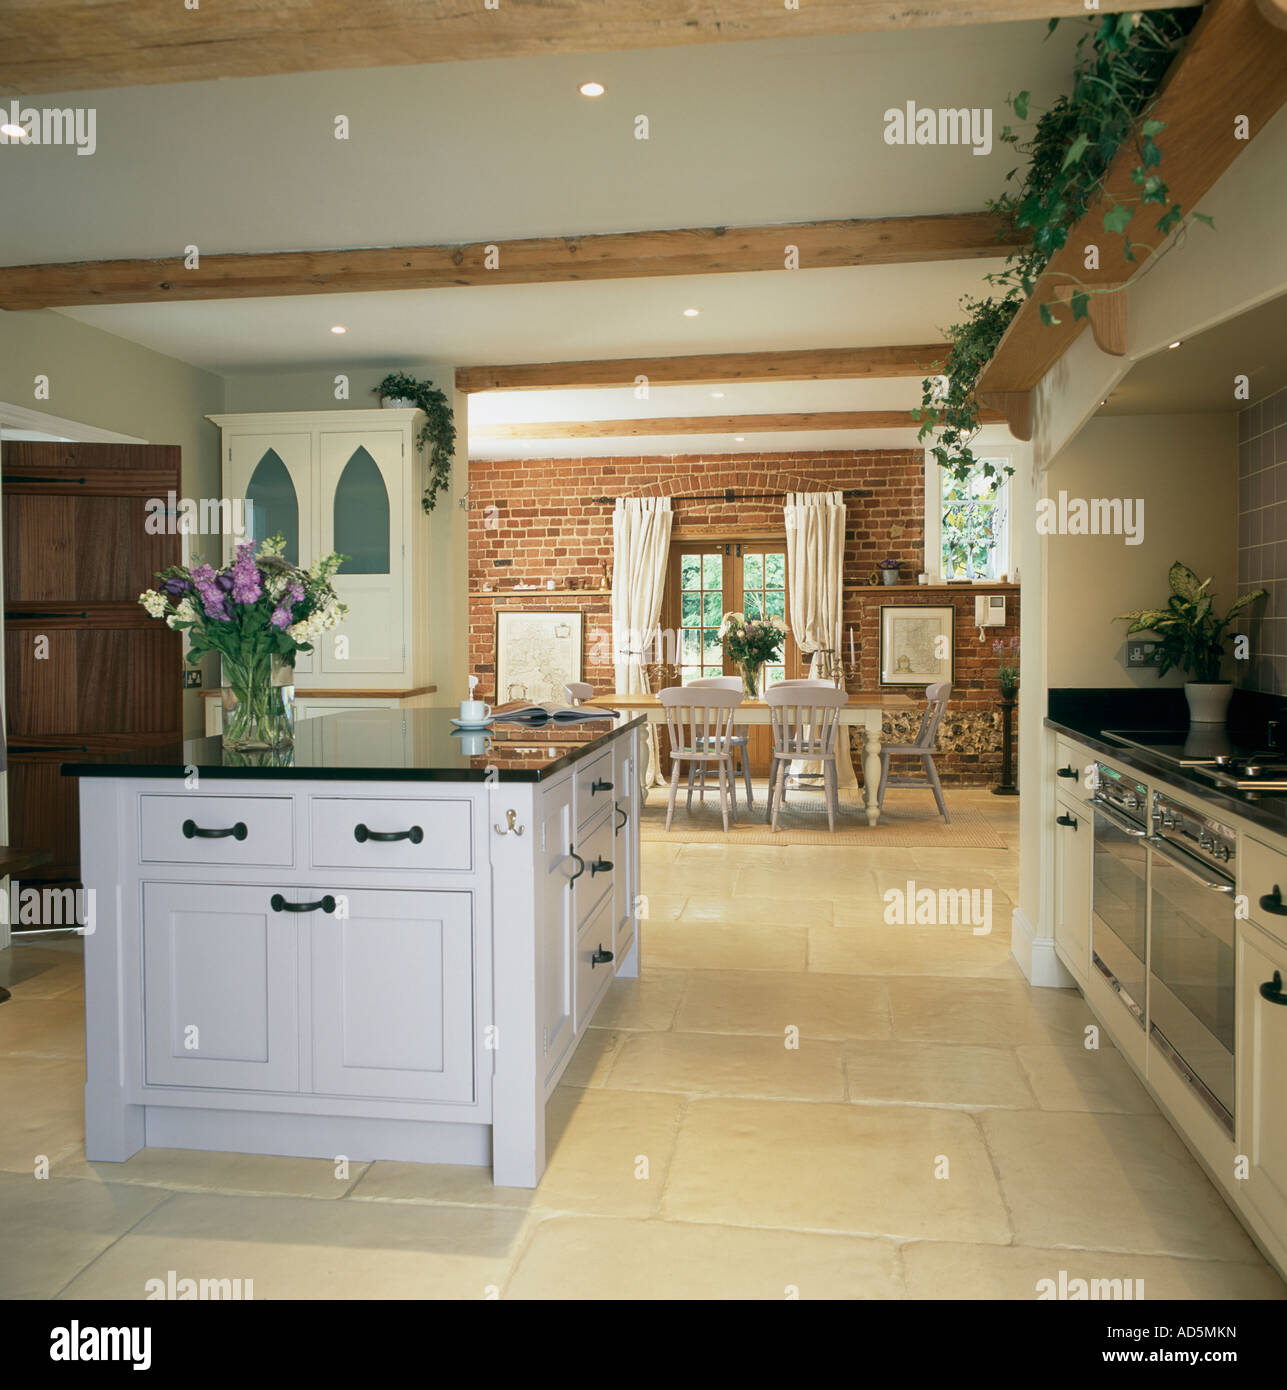 Islands Dining Room: White Island Unit In Openplan Kitchen And Dining Room With